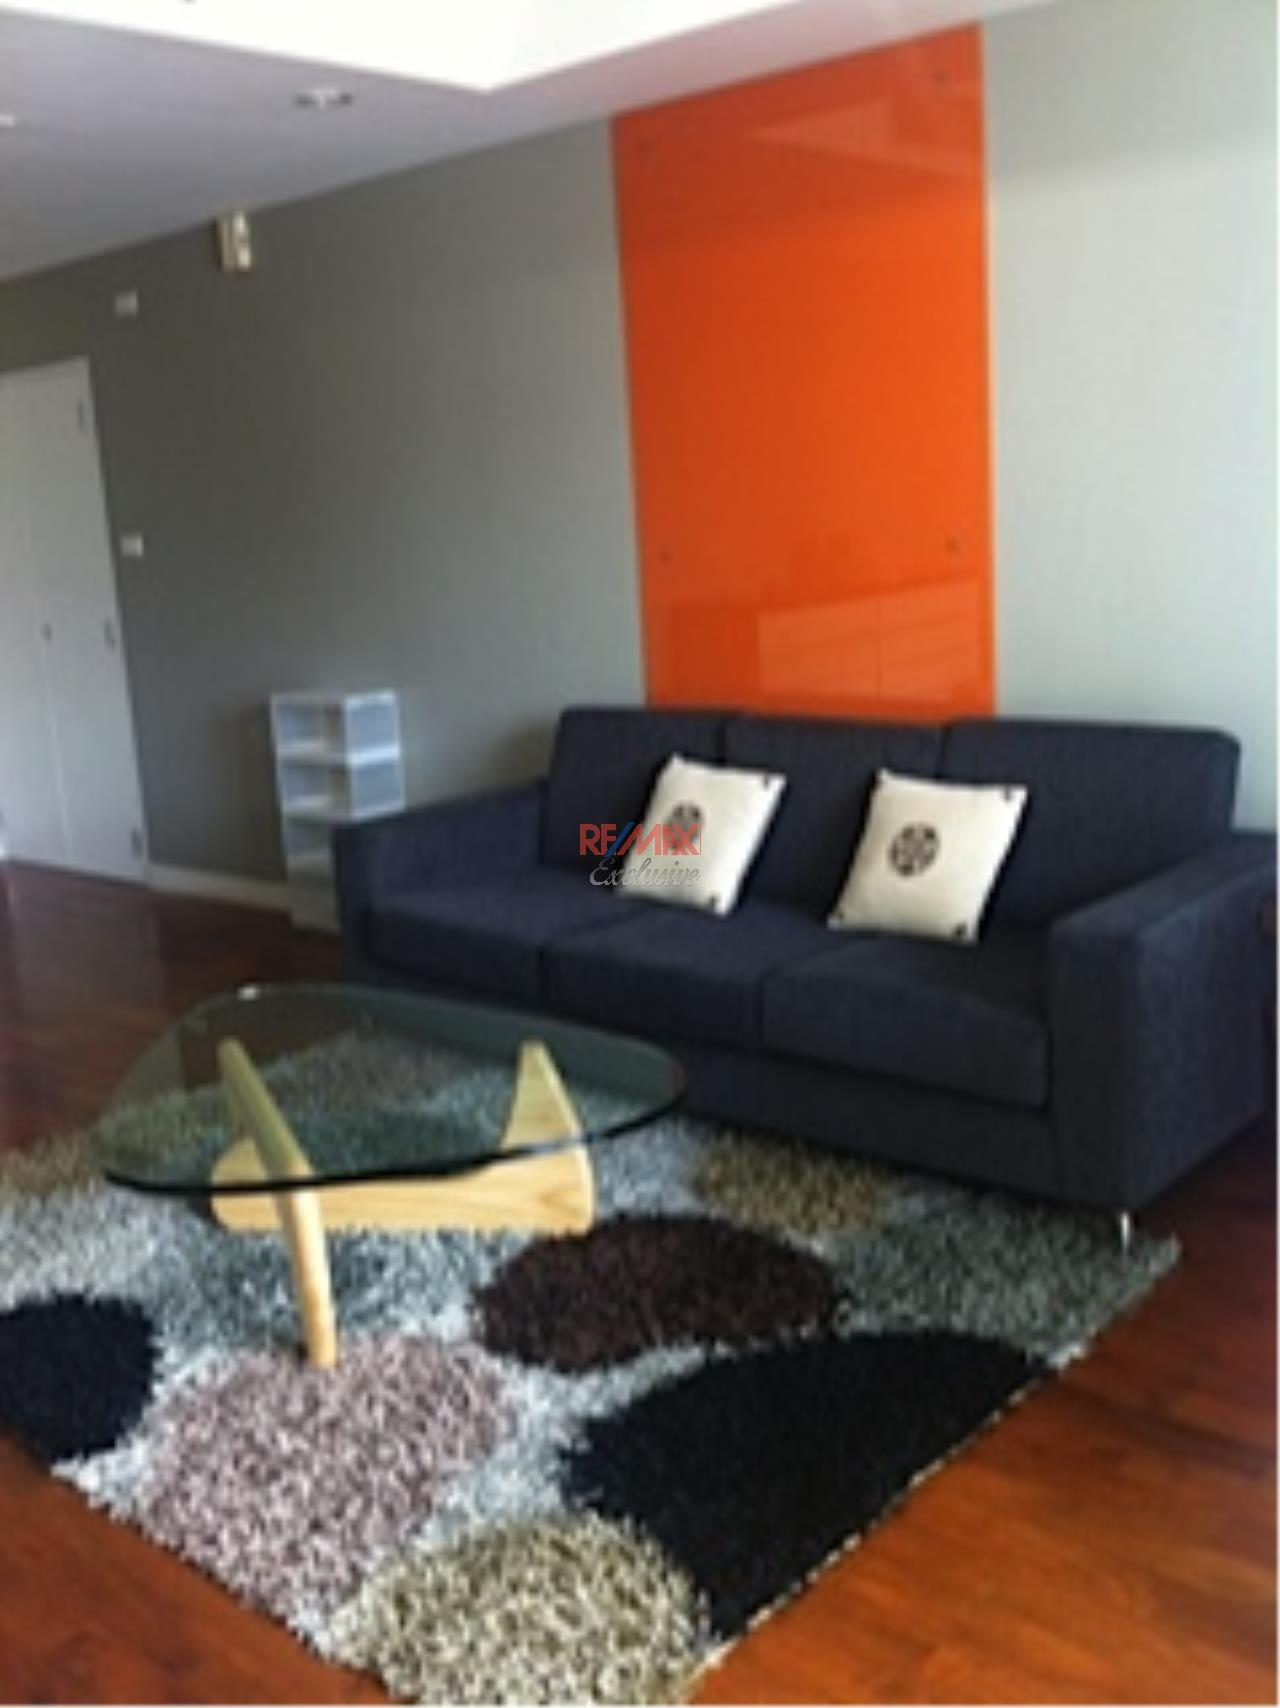 RE/MAX Exclusive Agency's BAAN SIRI 24, Sukhumvit 24, Fully-Furnished, 1 Bedroom, 60 Sq.M. High Floor, City View! 3